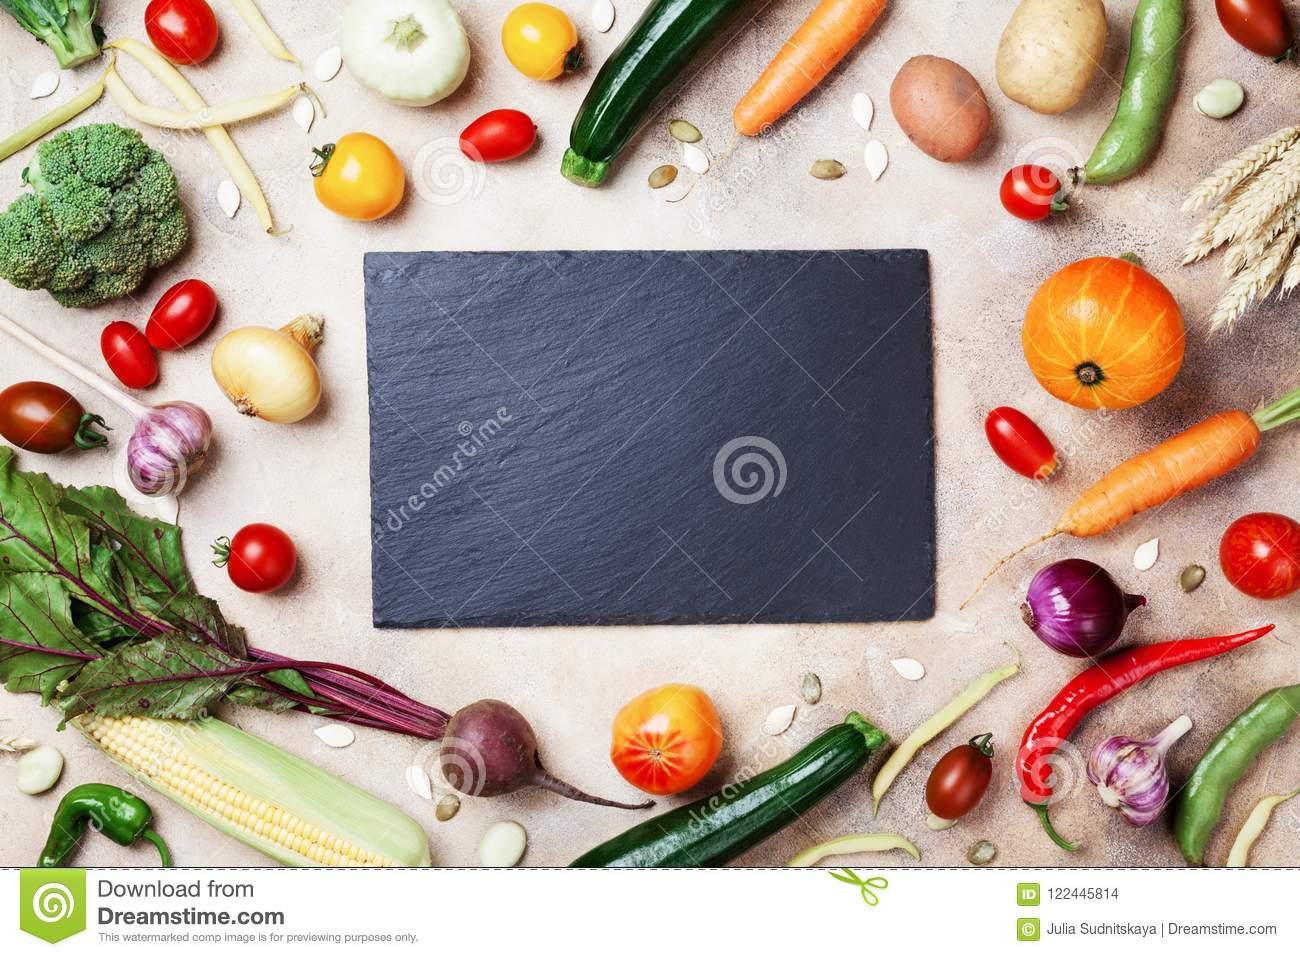 Autumn farm vegetables, root crops and slate cutting board top view with copy space for menu or recipe. Healthy and organic food.